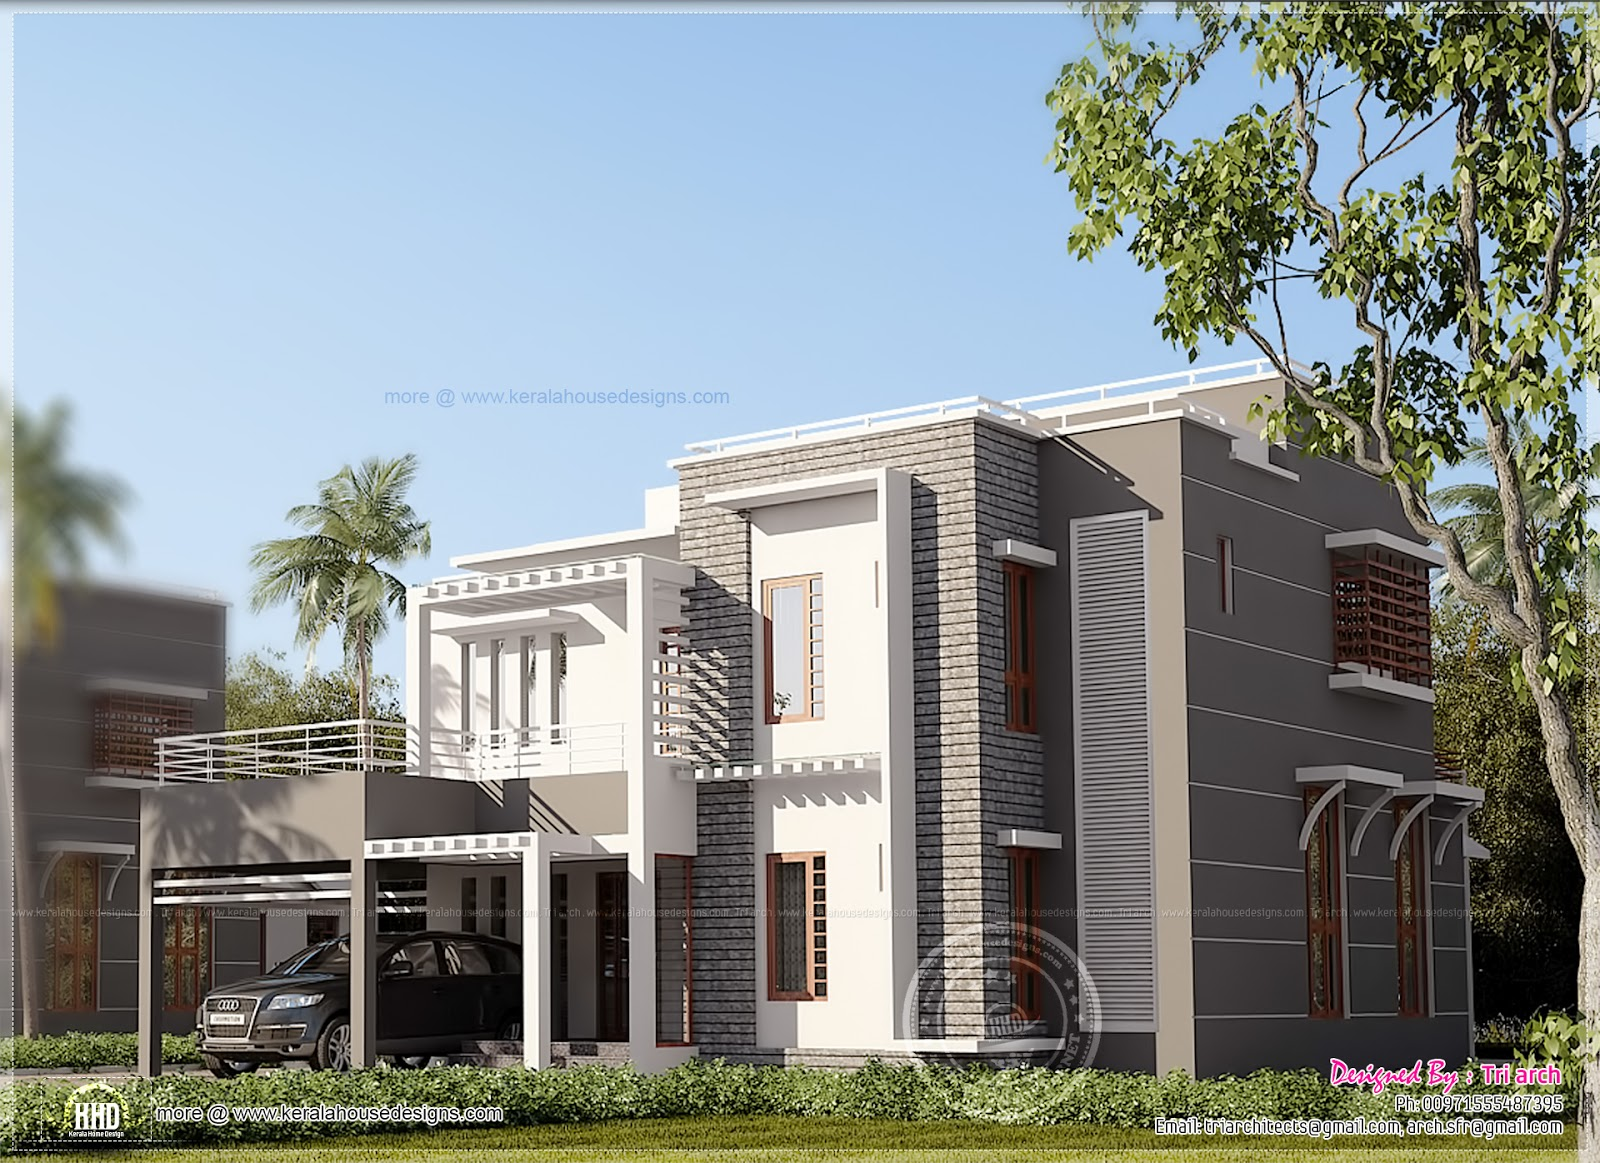 Contemporary home design in kerala home kerala plans - Contemporary home design ...